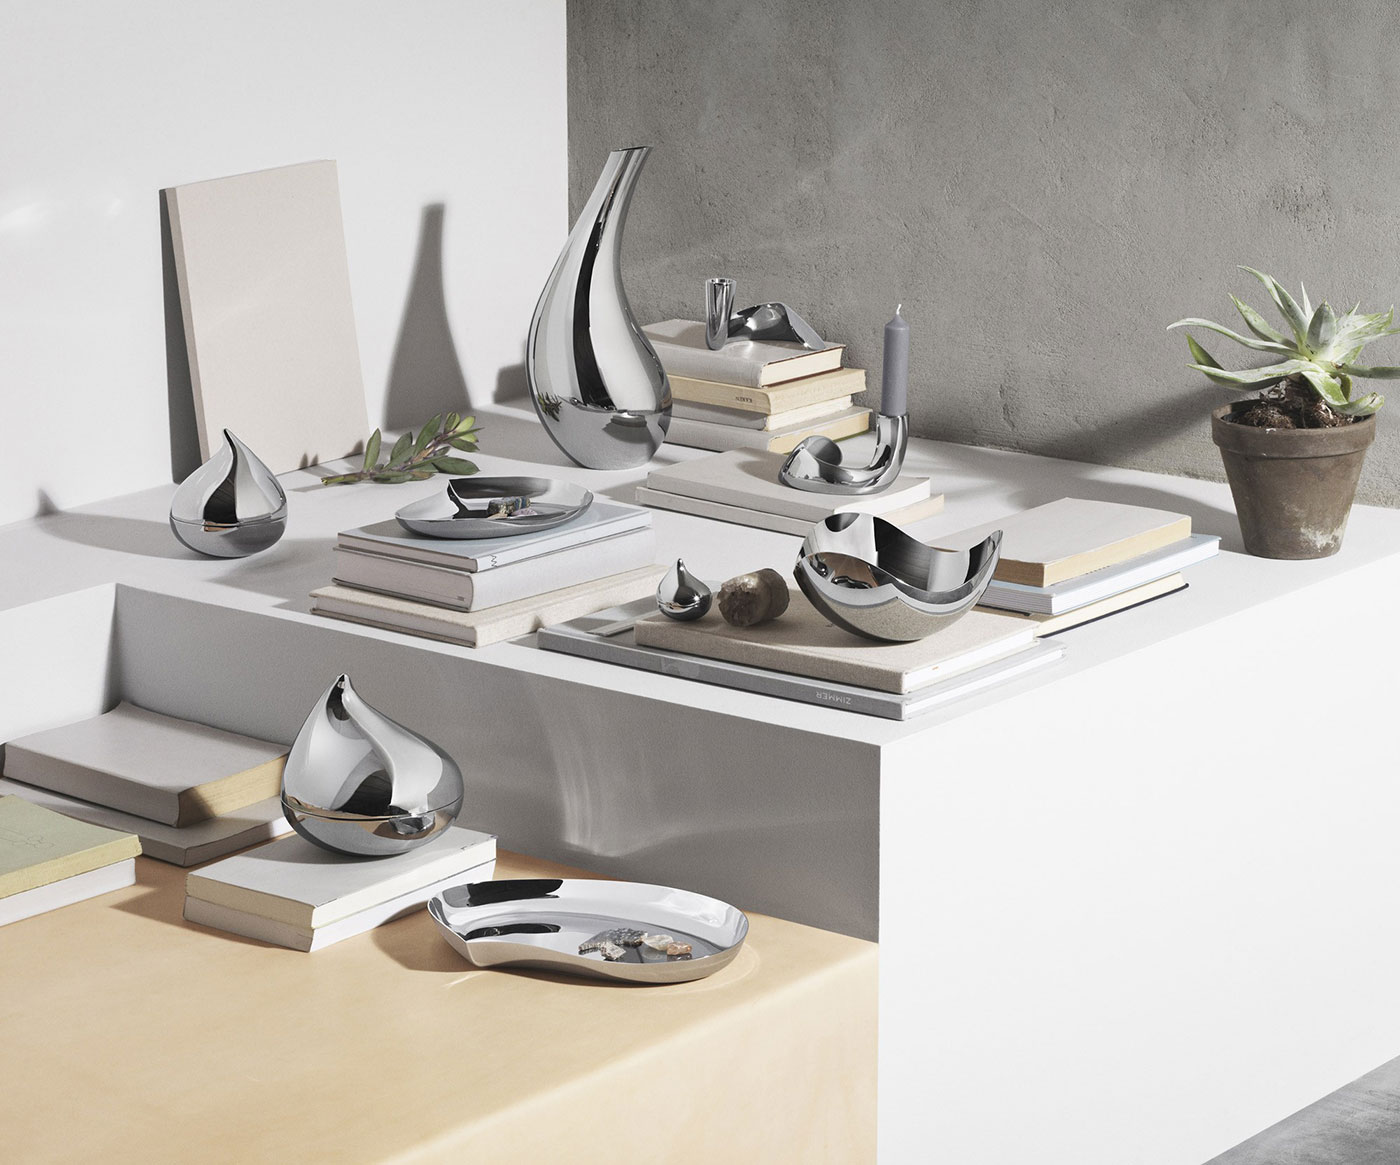 Bloom stainless steel collection